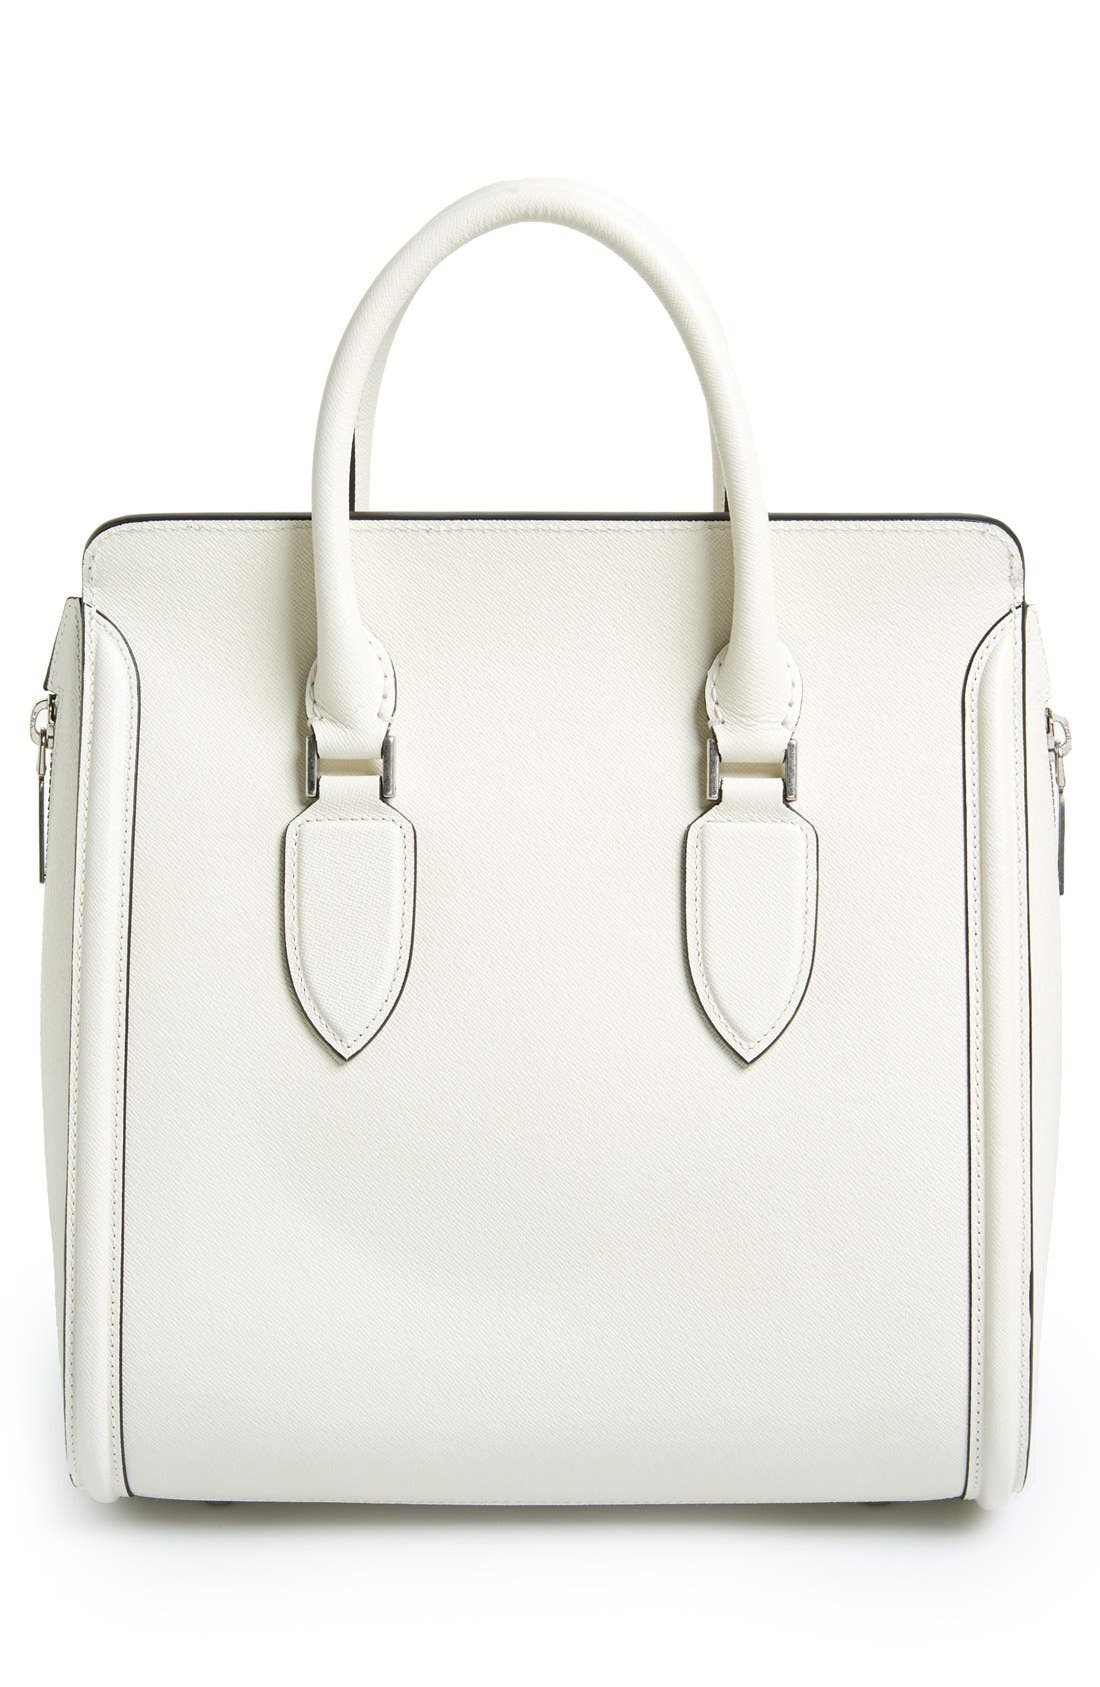 Alternate Image 3  - Alexander McQueen 'Medium Heroine' Calfskin Leather Satchel